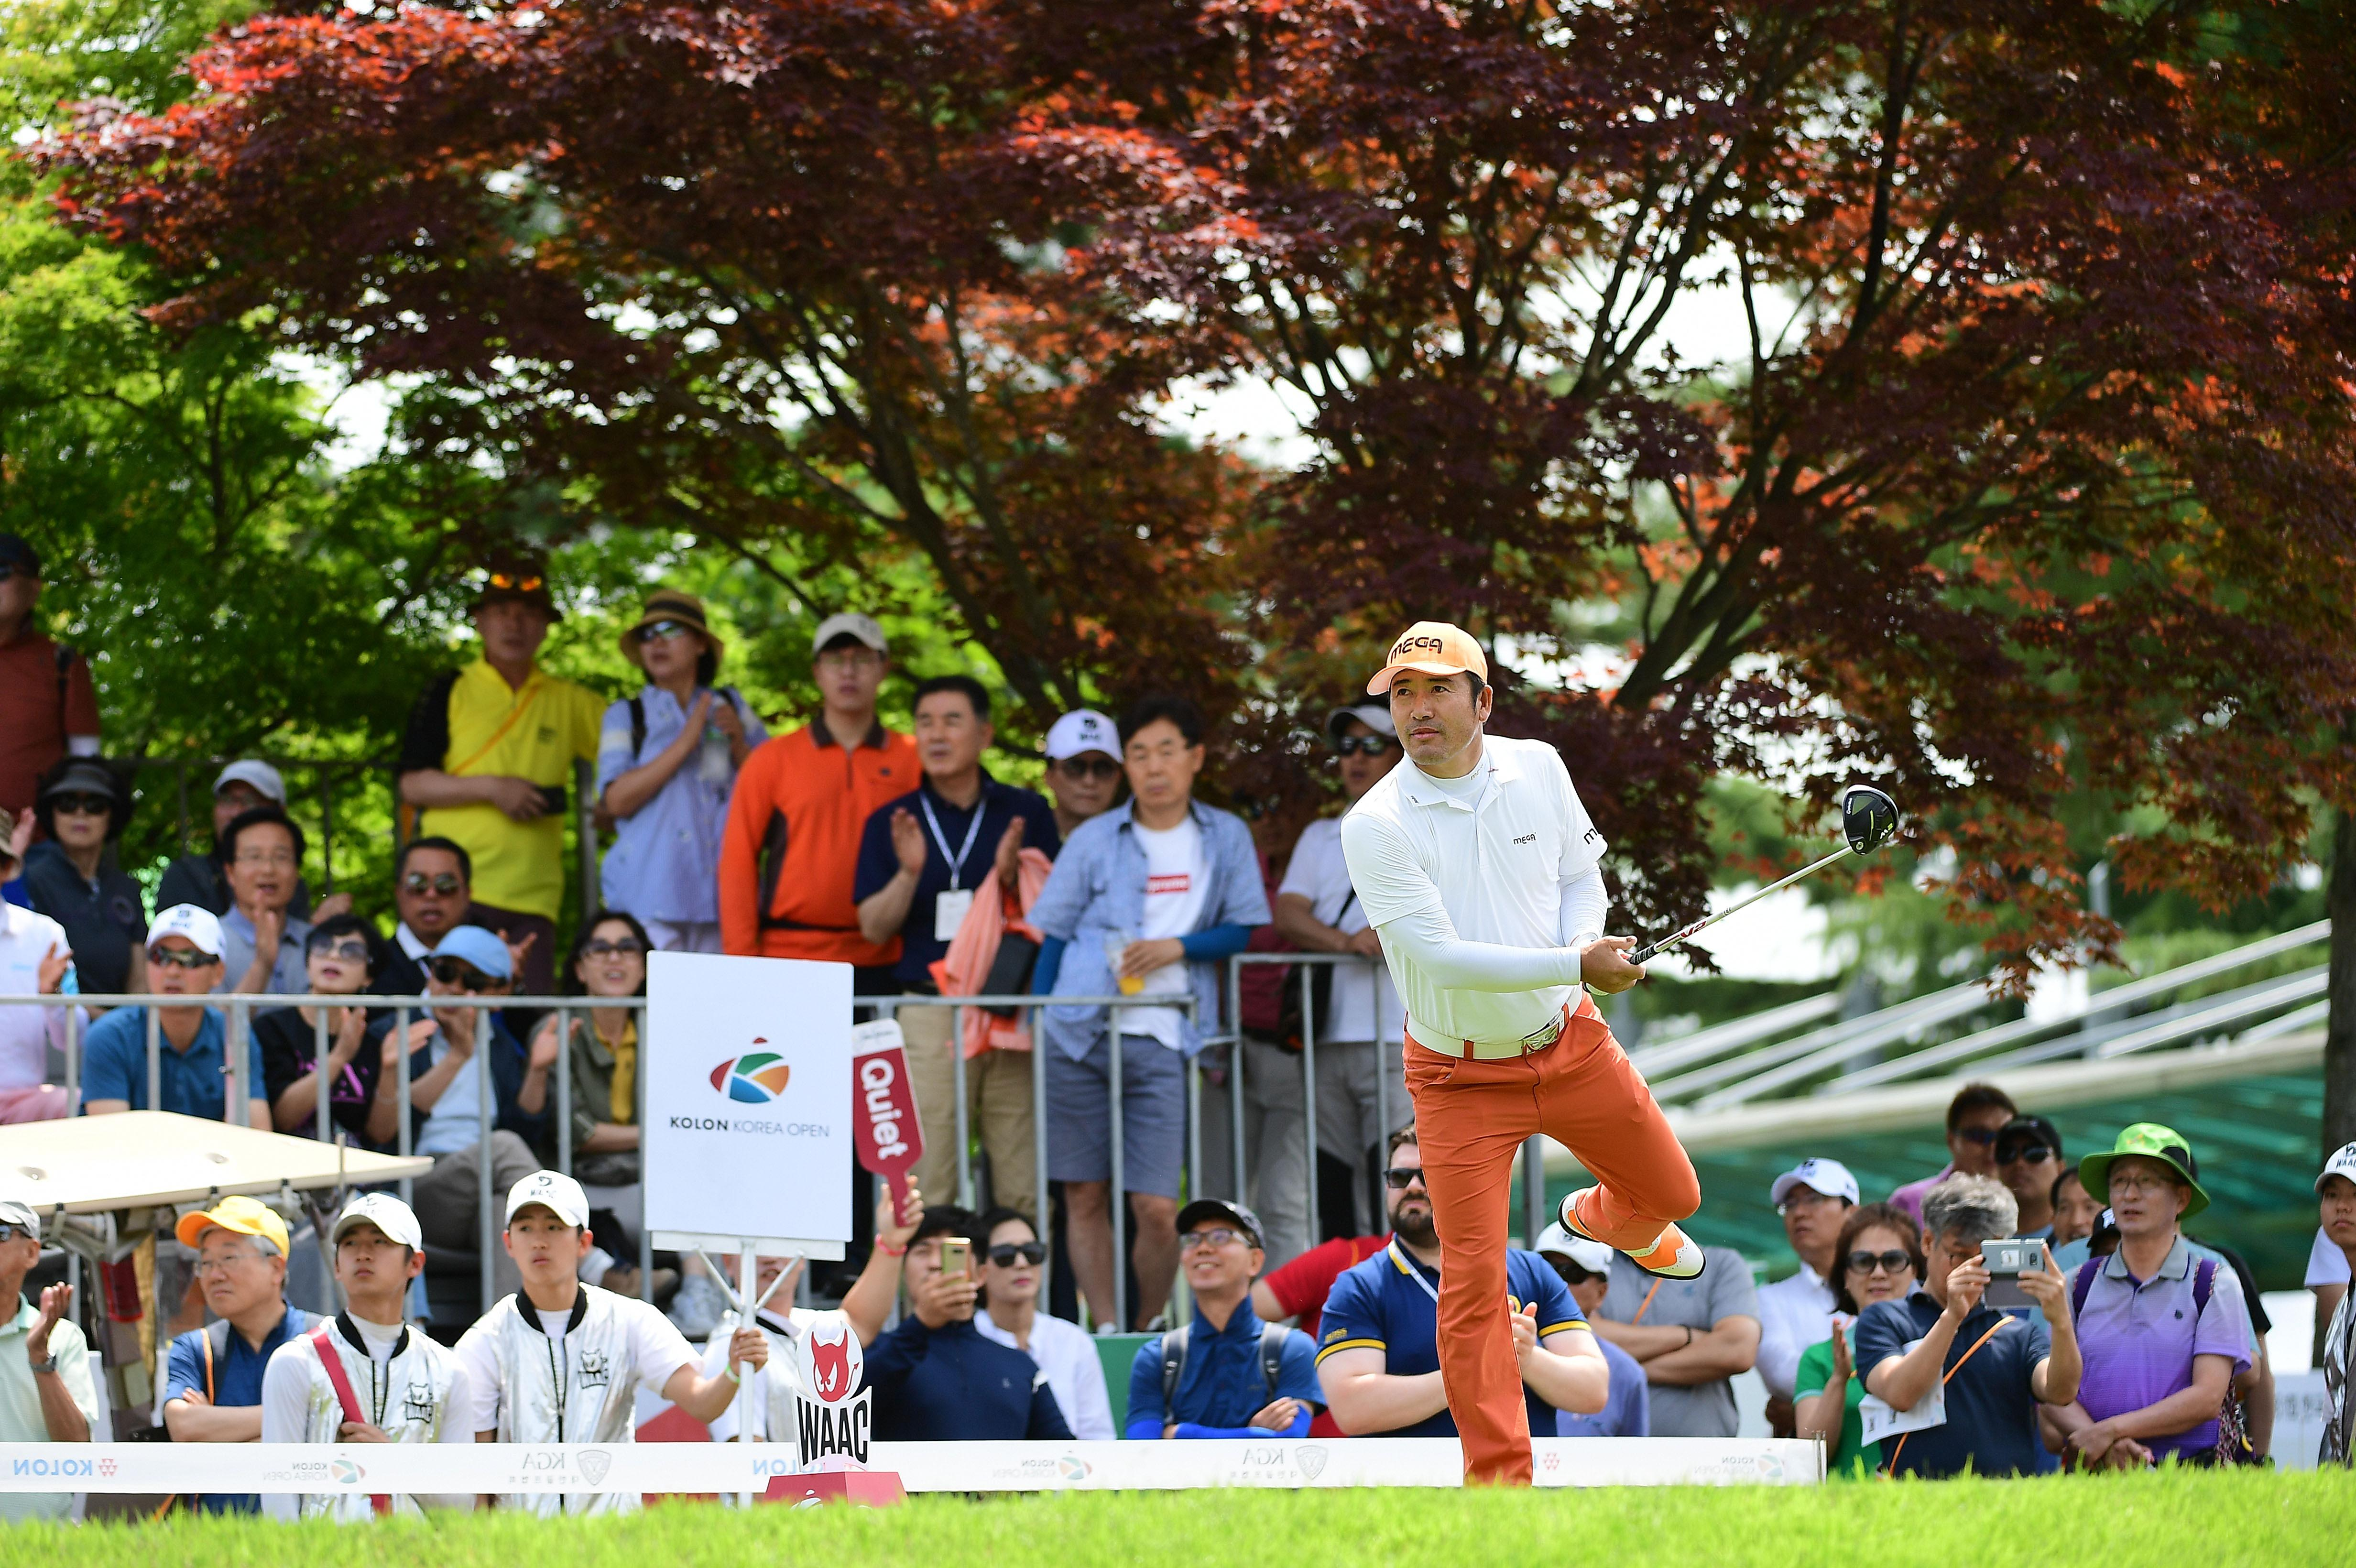 Choi Ho-sung flicked a leg in the air on his swing follow-through